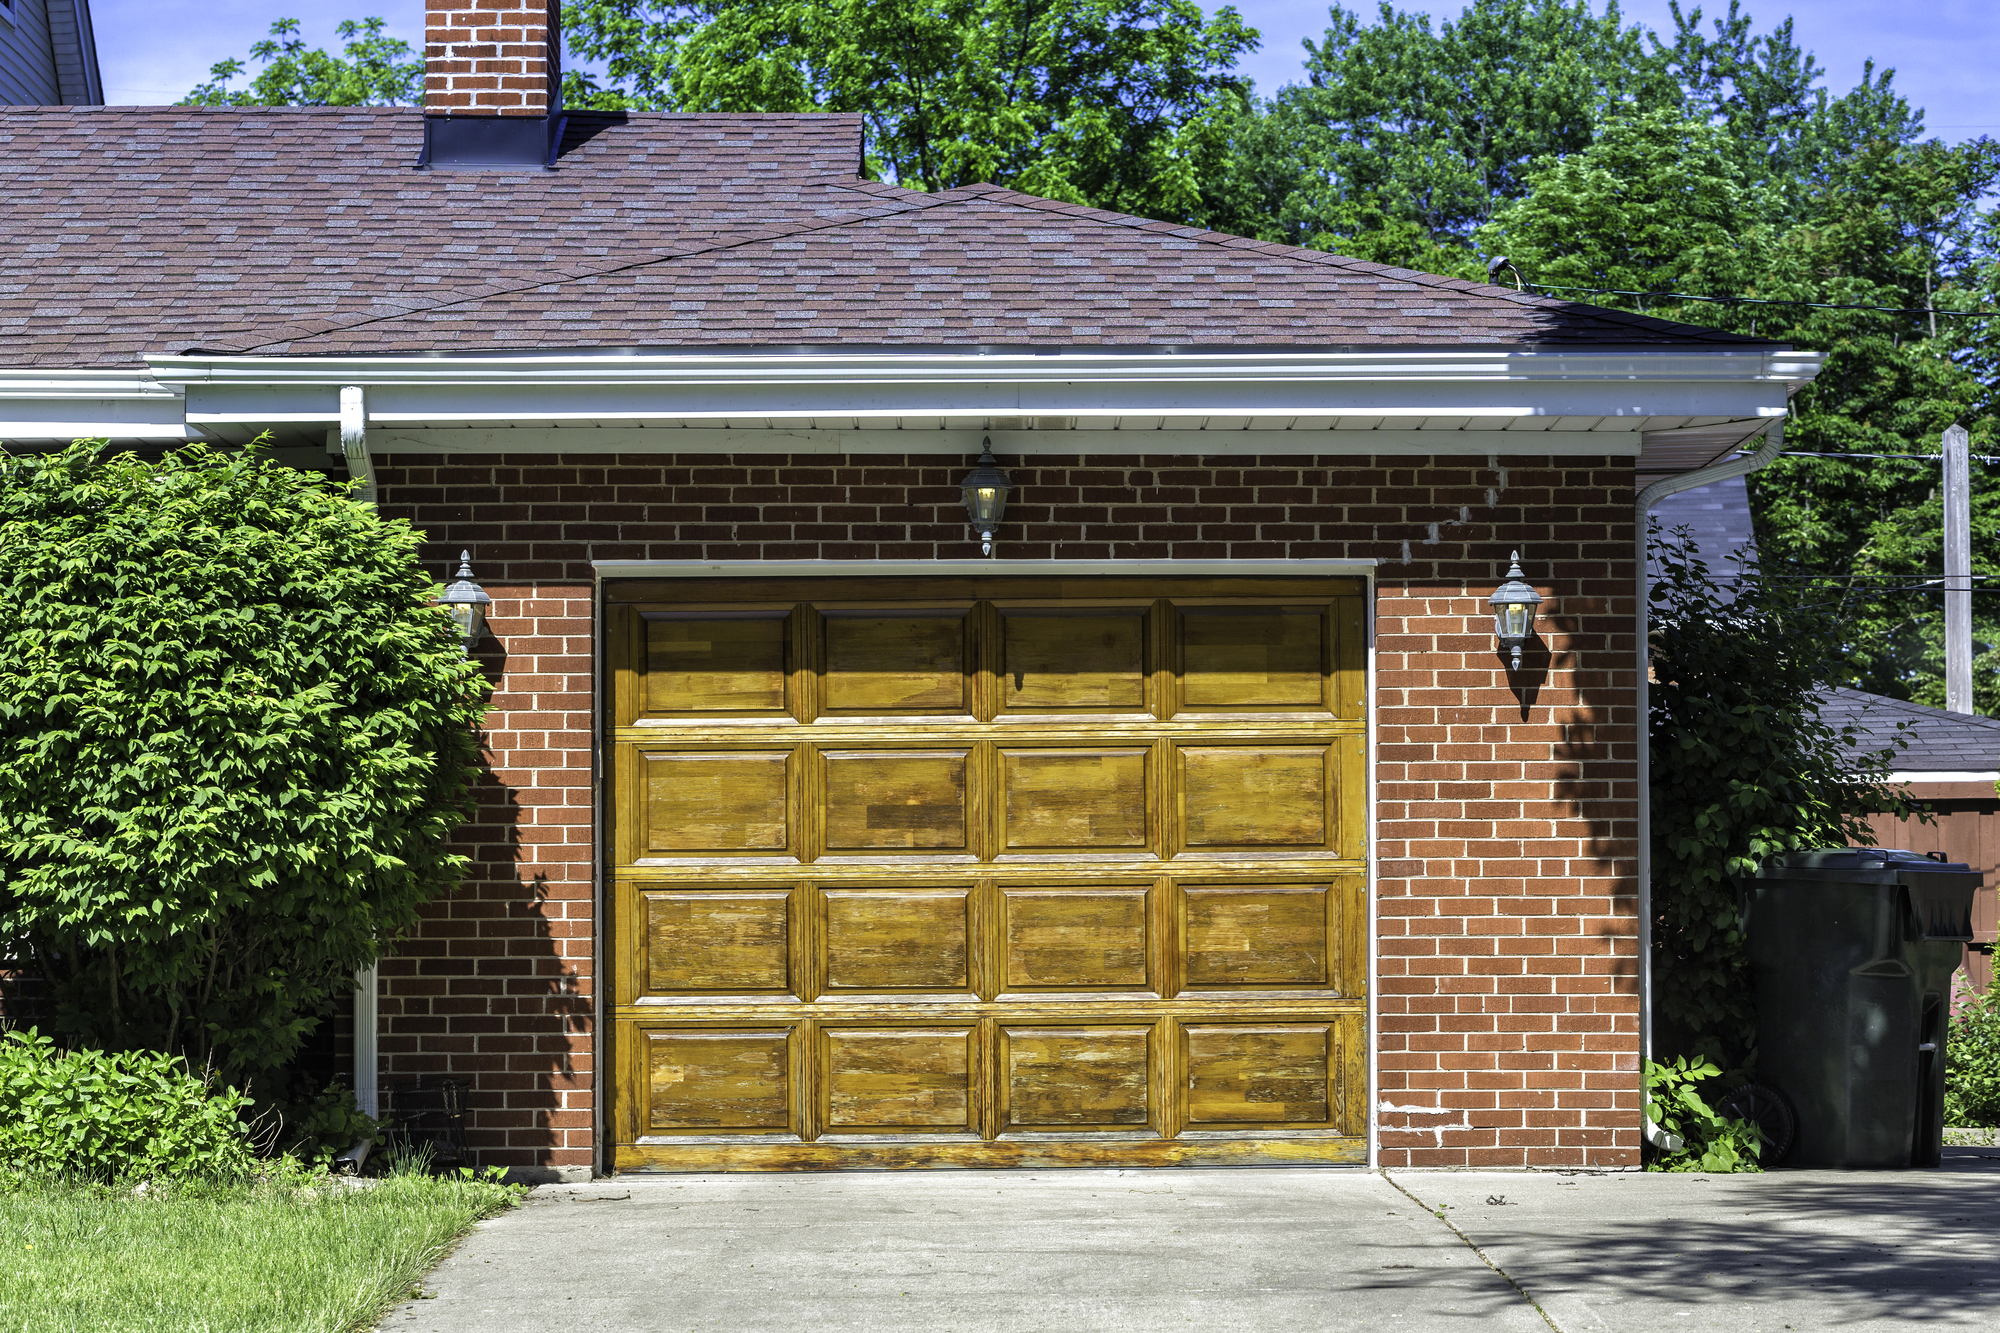 How to Choose an Energy-Efficient Garage Door - Chris